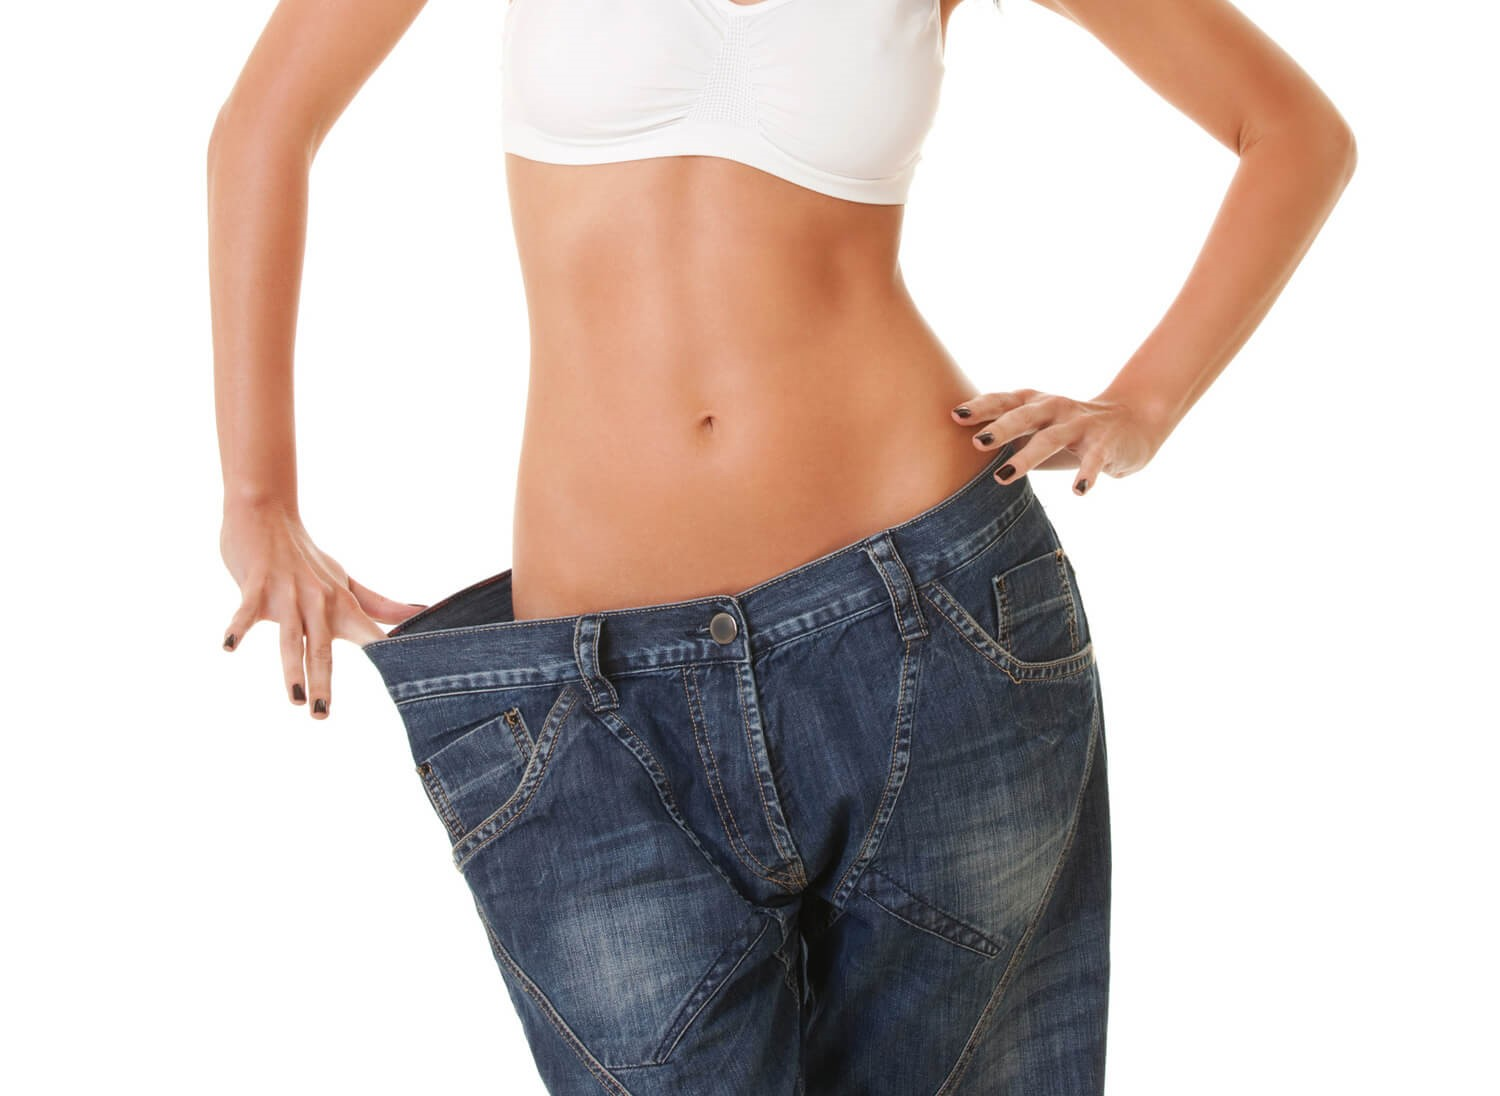 5 safe weight loss techniques